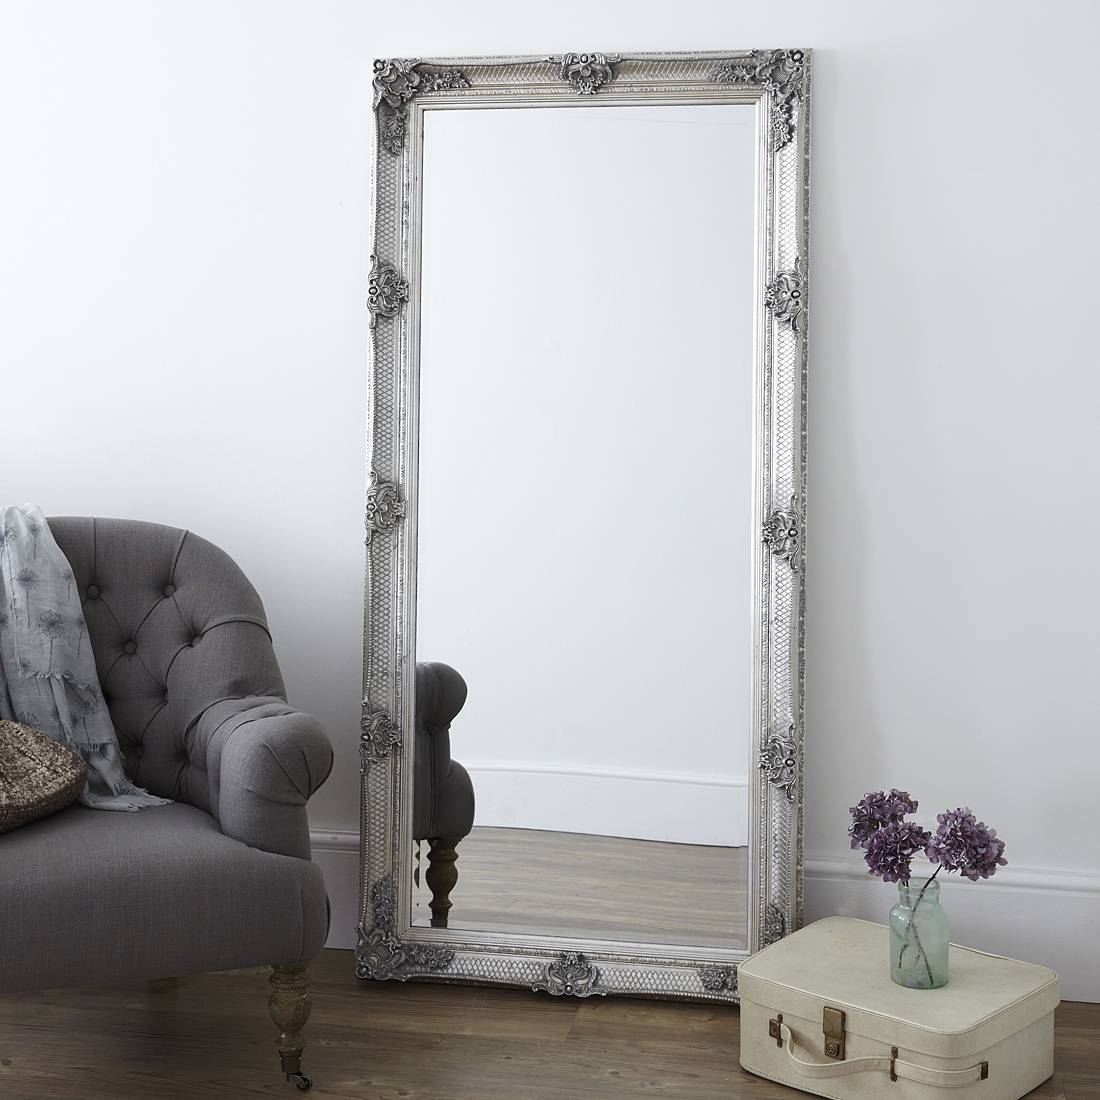 Decorative Antique Silver Full Length Mirror – Primrose & Plum For Full Length Silver Mirrors (View 6 of 25)